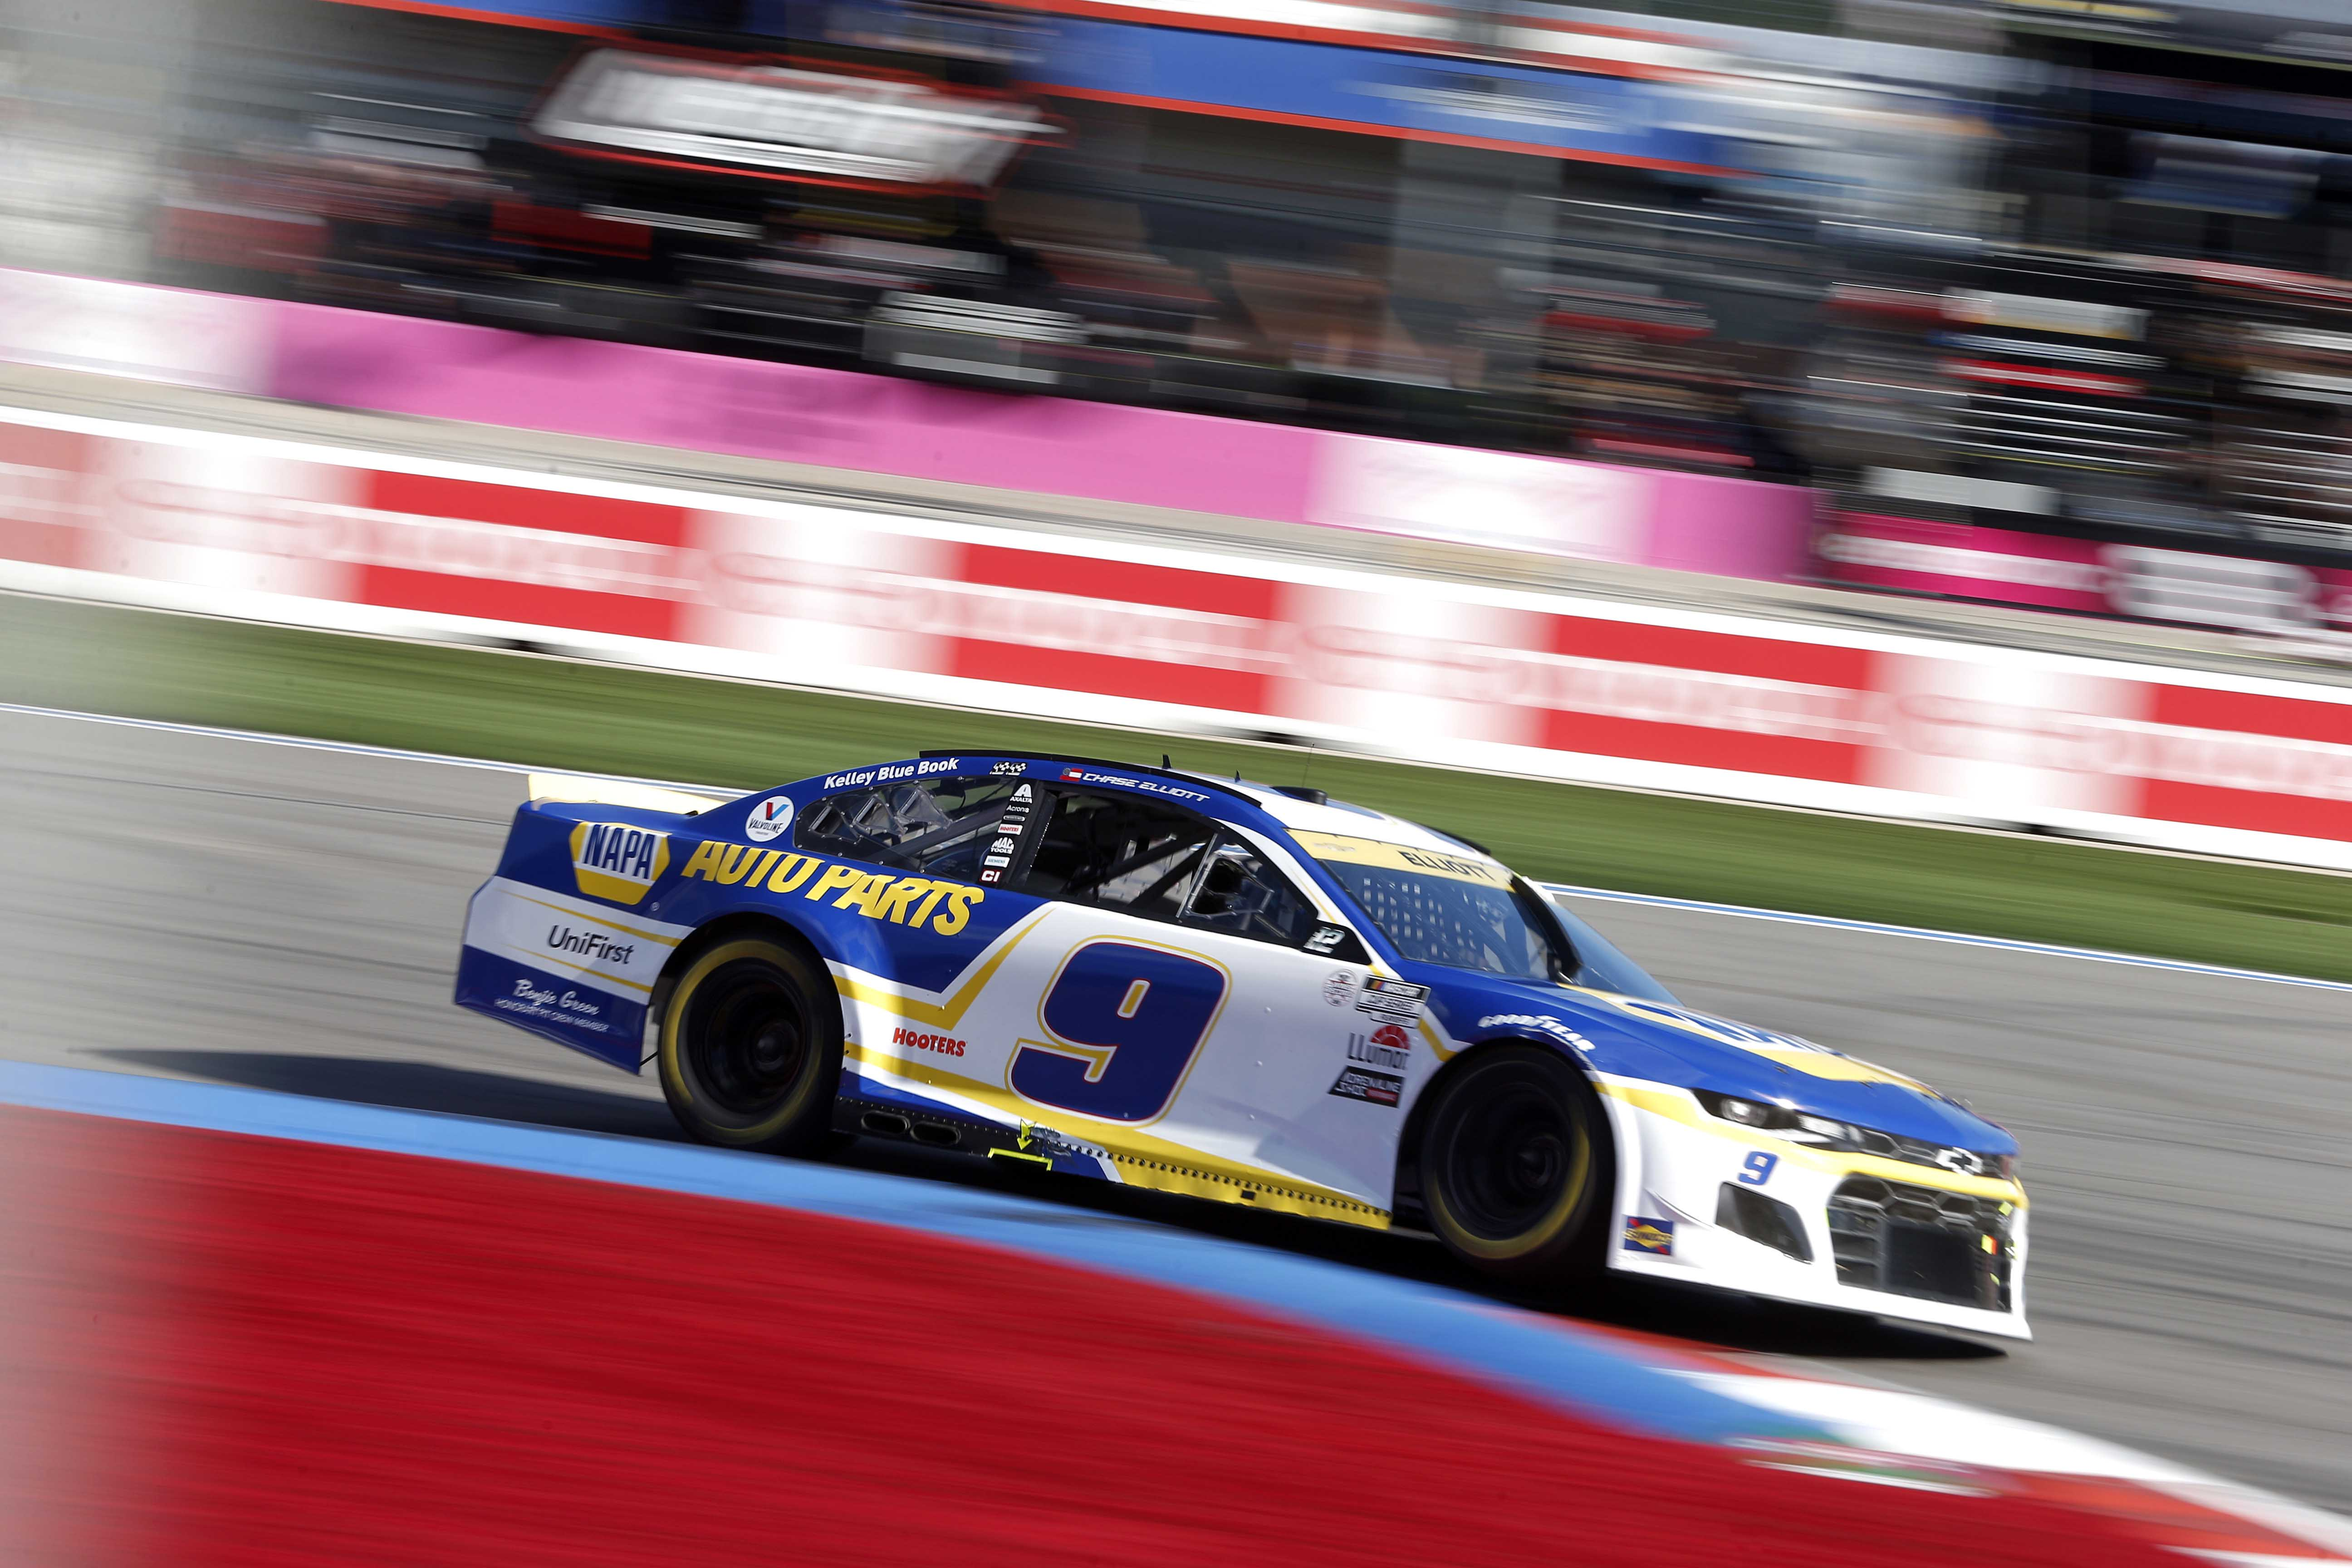 Chase Elliott - Charlotte Roval - NASCAR Cup Series